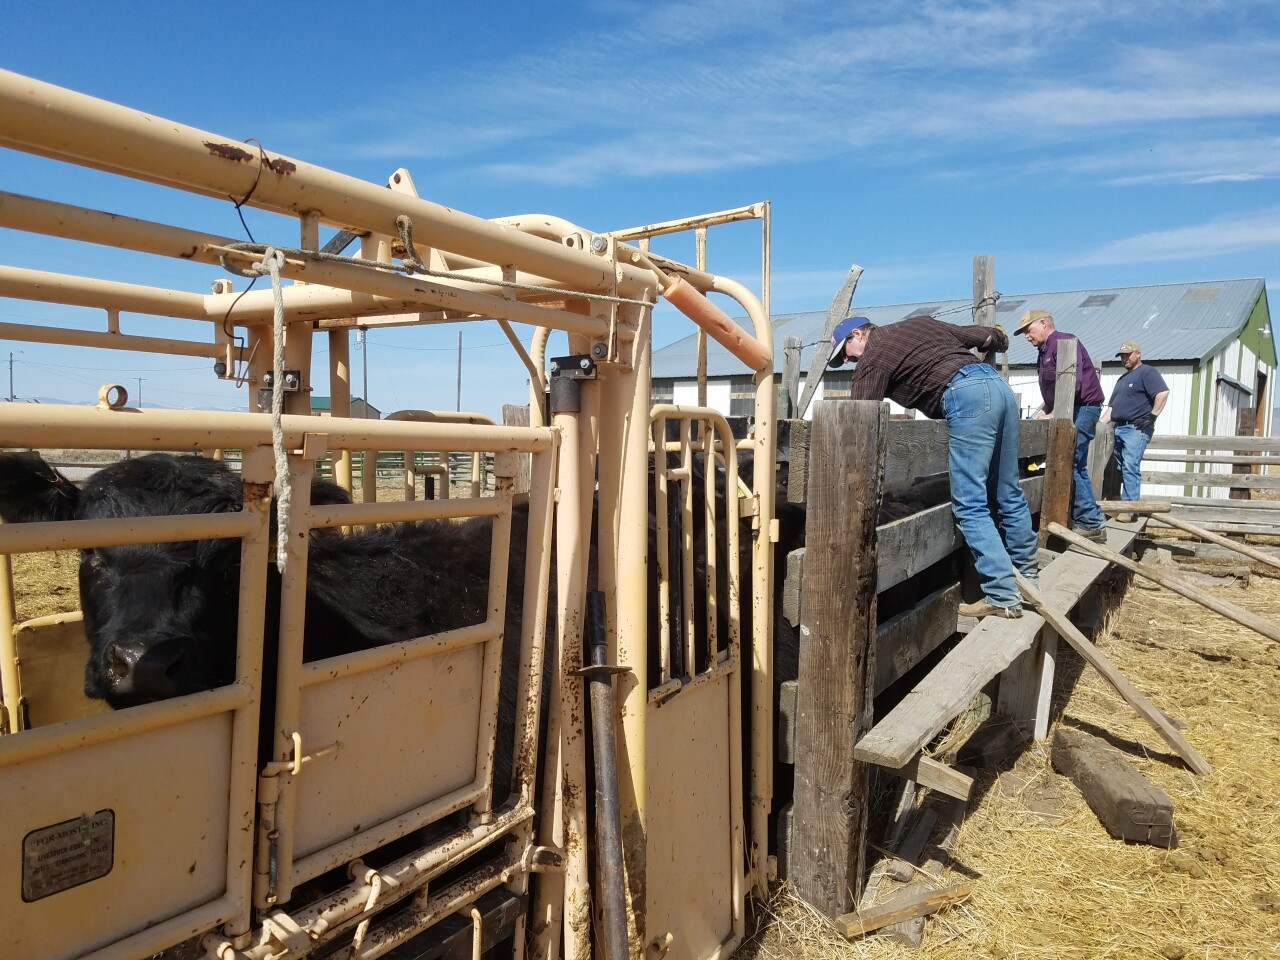 Cattle getting yearly vaccinations